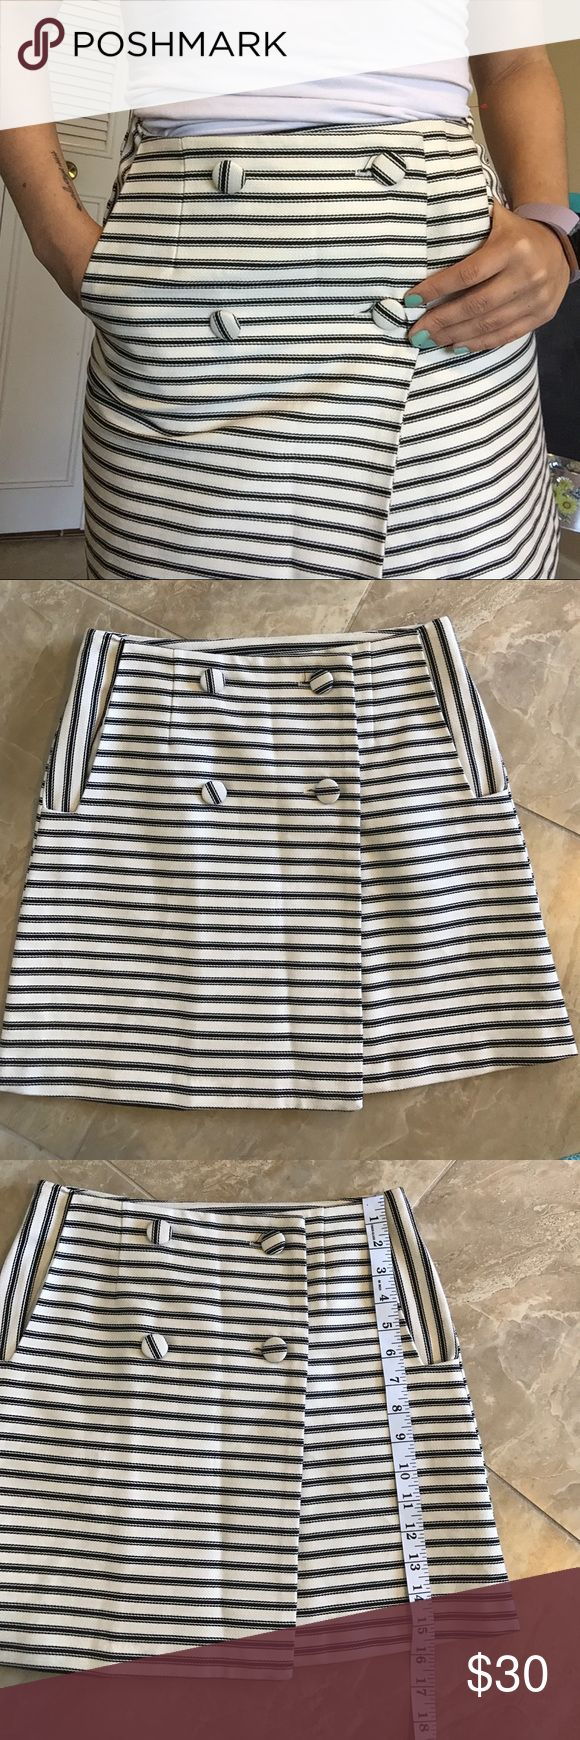 Topshop Skirt • Size: 4 Topshop skirt with cute buttons and pockets! Size 4 Topshop Skirts Mini